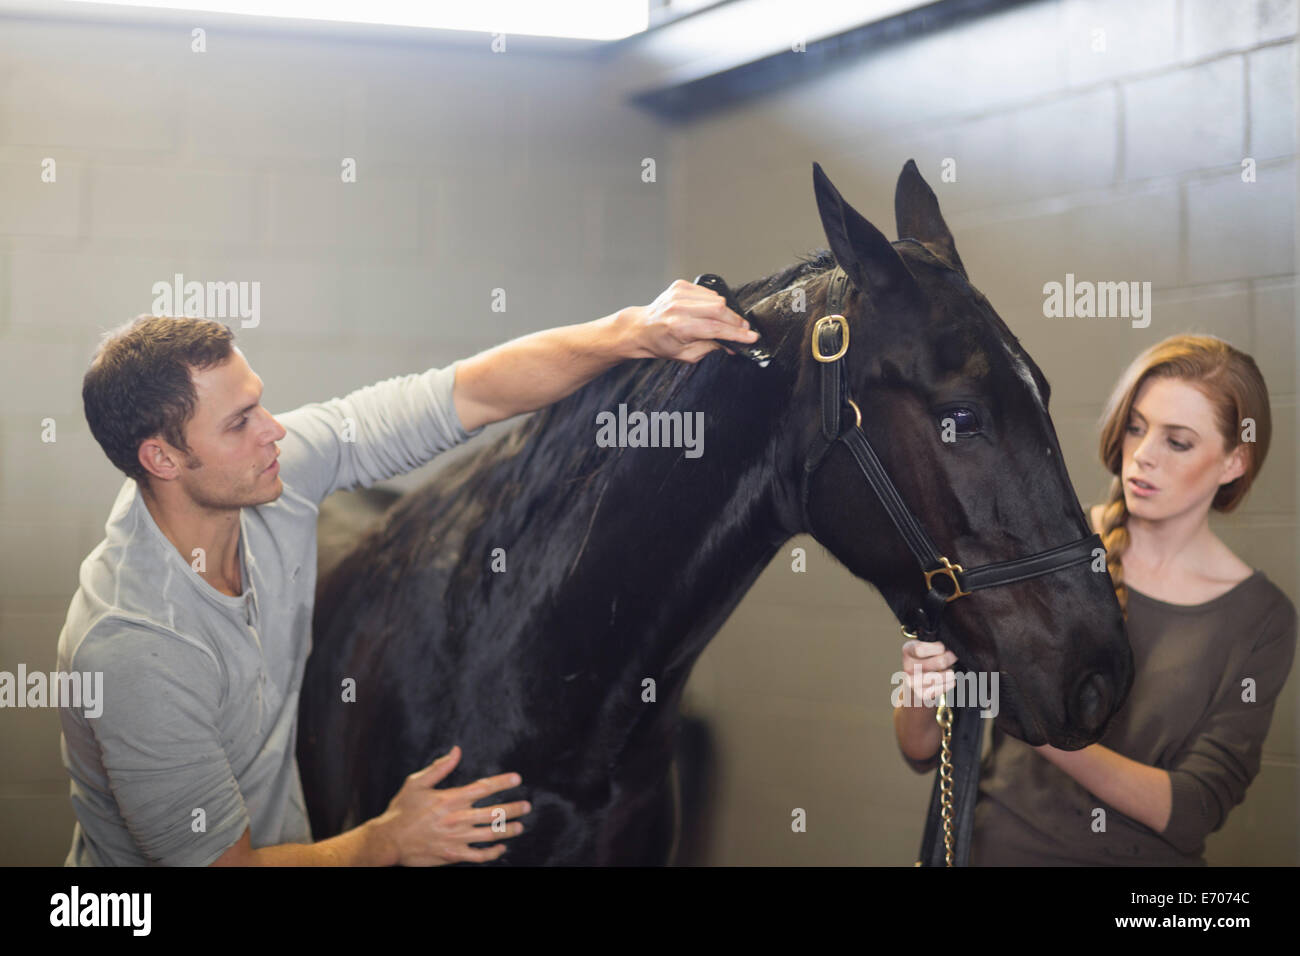 Stablehands grooming black horse in stables - Stock Image